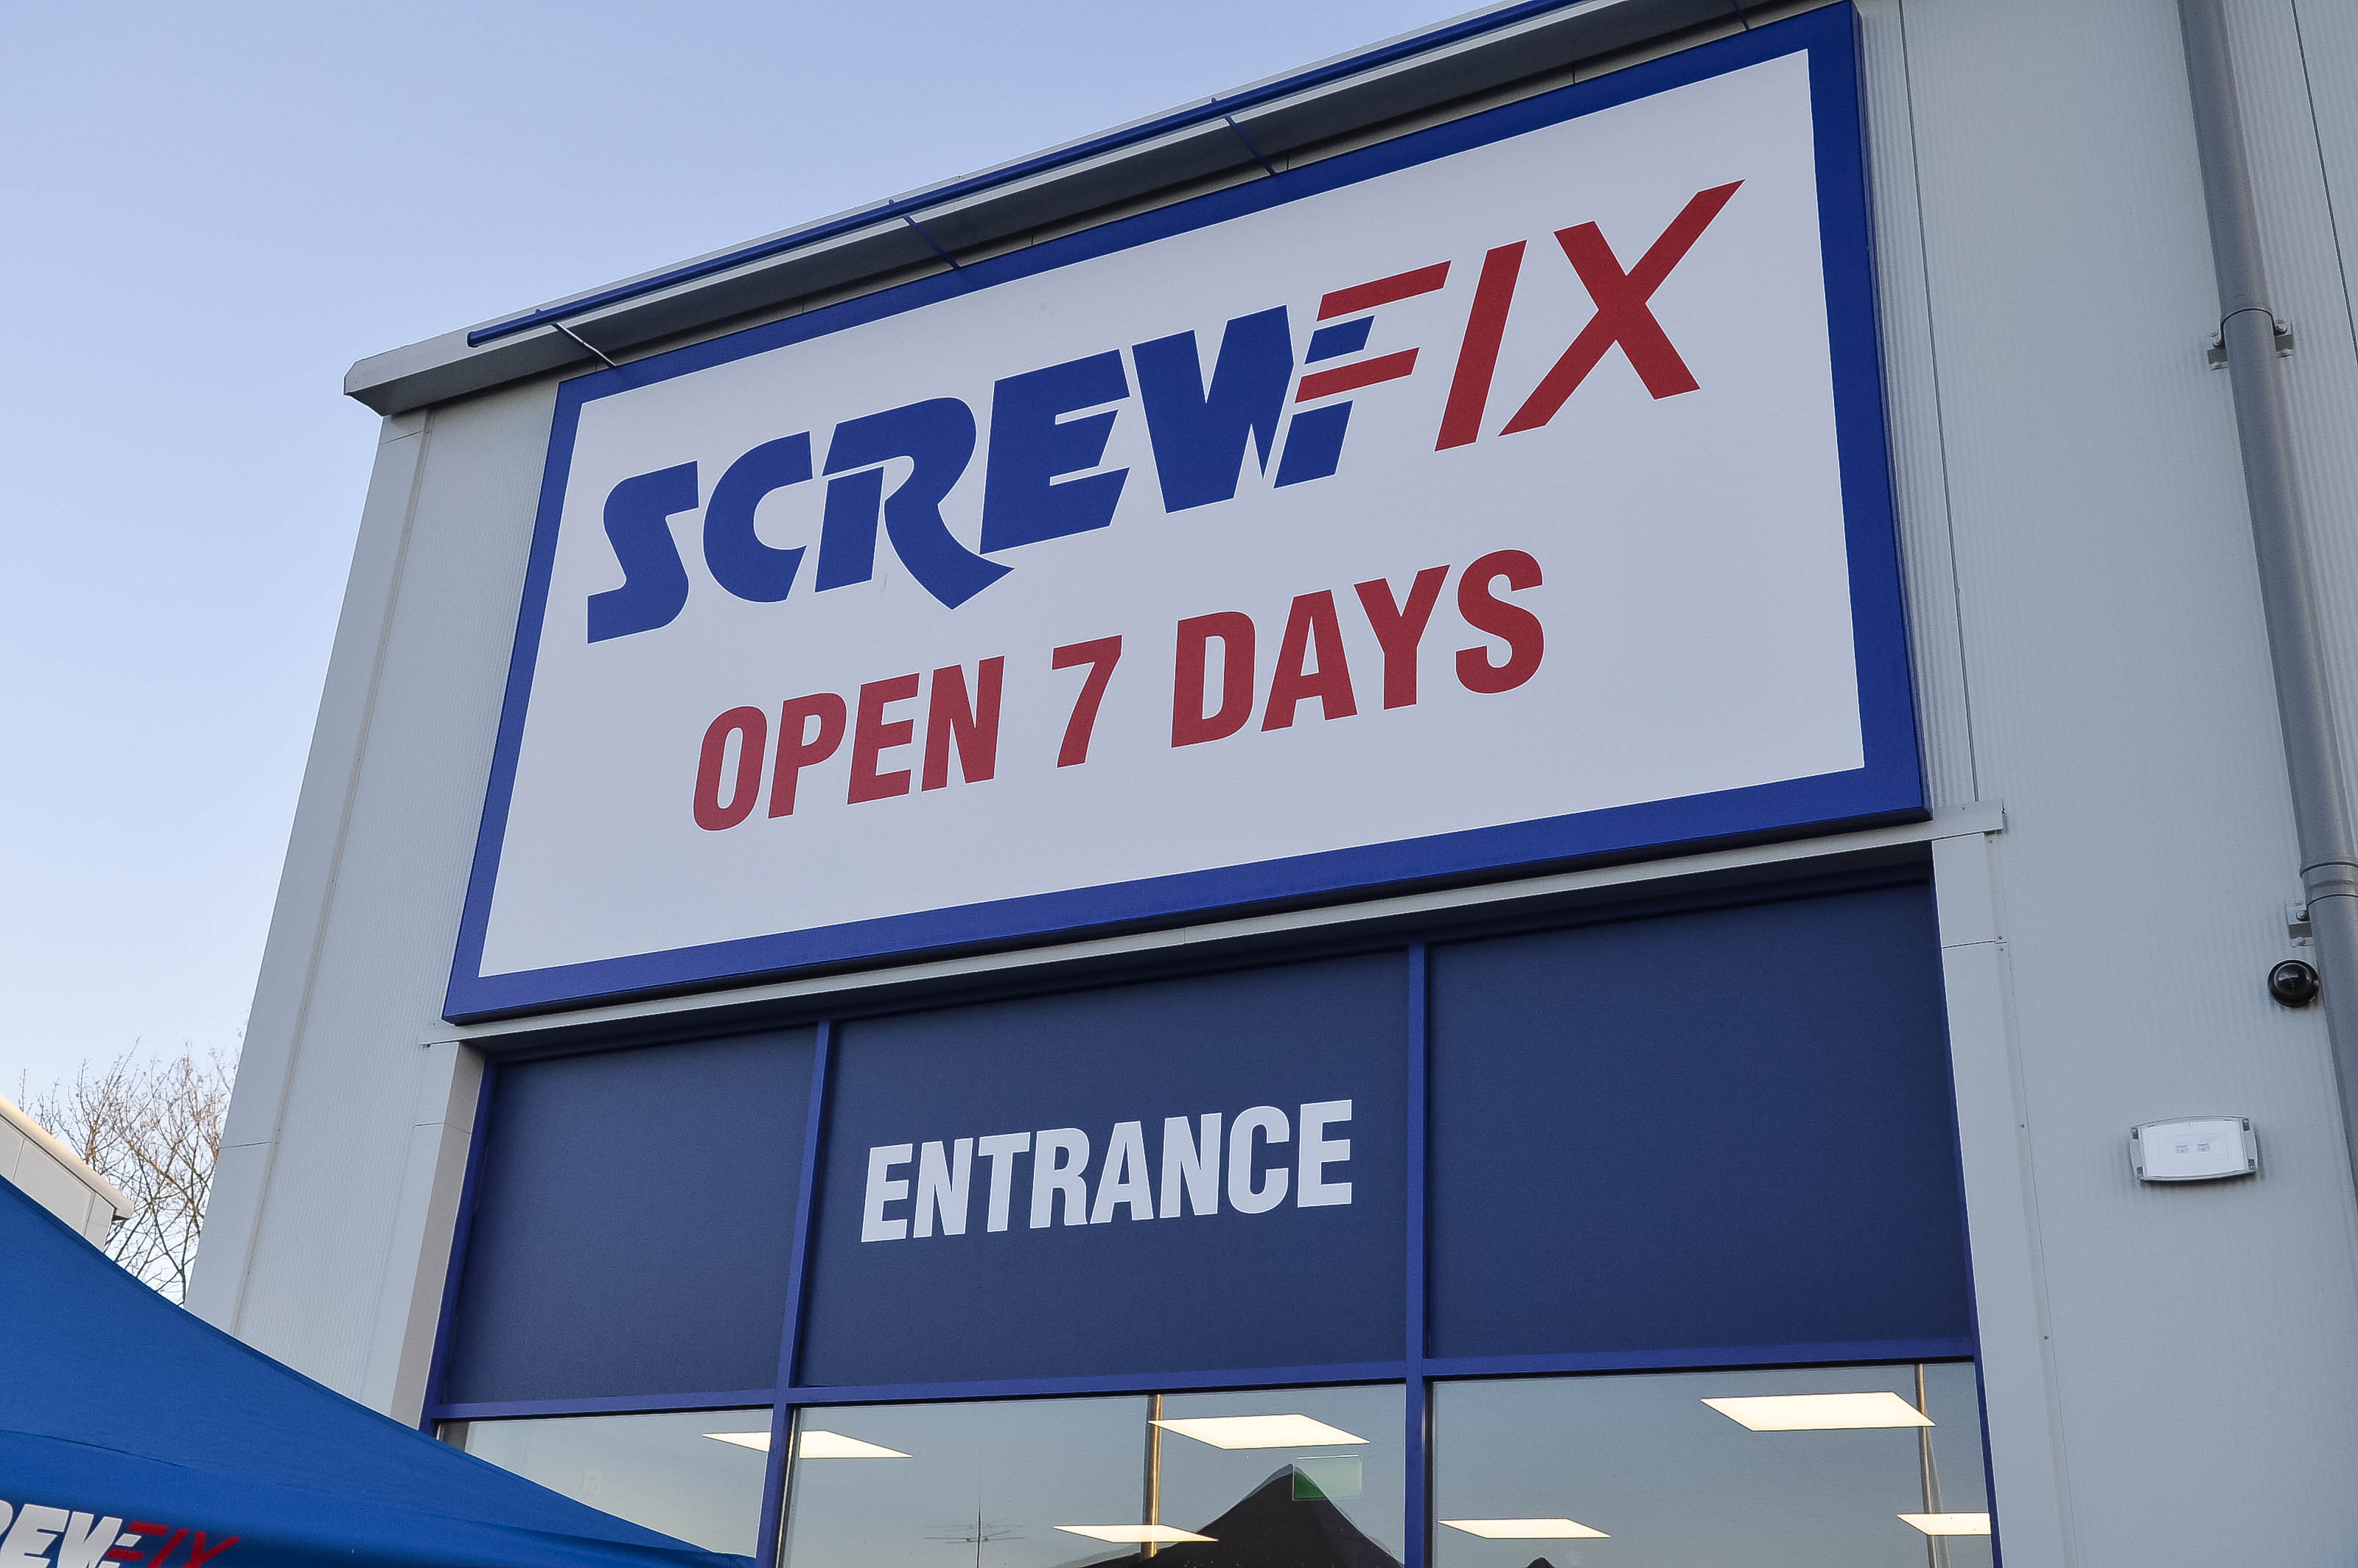 Screwfix is celebrating the successful launch of its most recent store opening Melton Mowbray. The store officially opened its doors on 24th May 2018 ... & Screwfix officially open its doors in Melton Mowbray | Screwfix ...